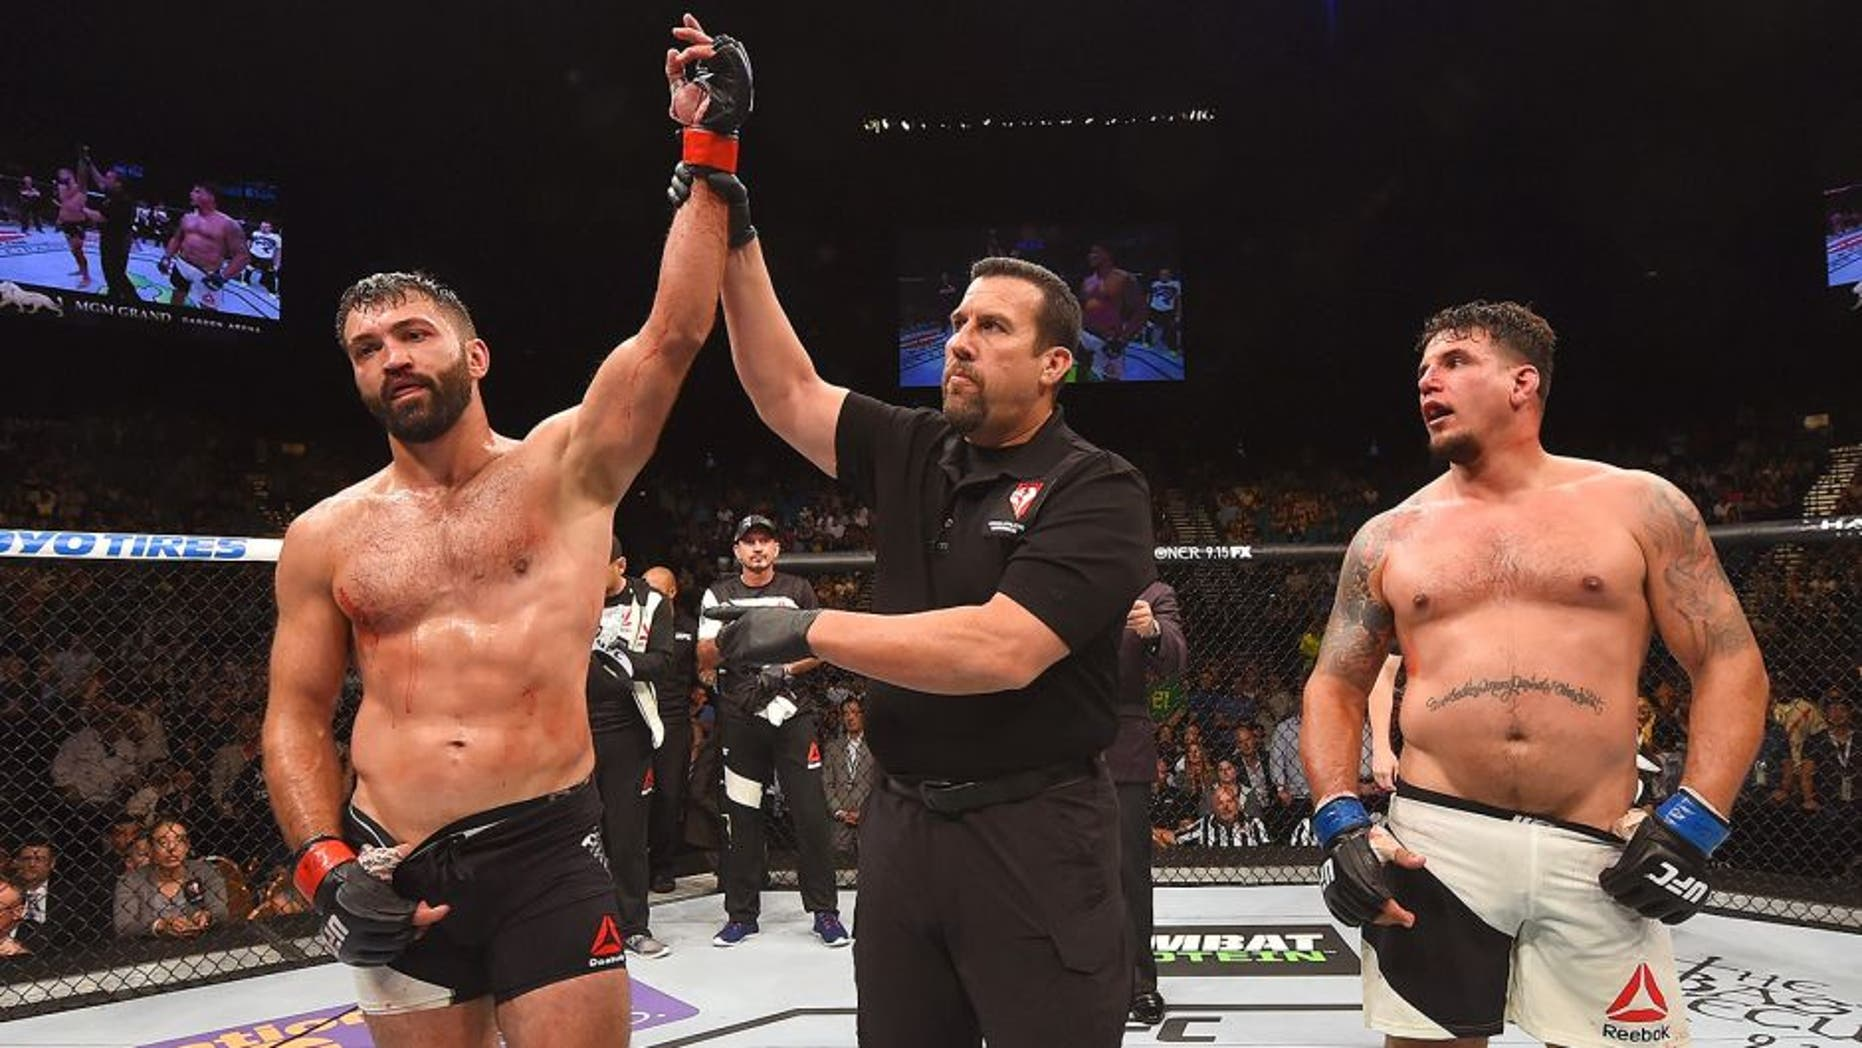 LAS VEGAS, NV - SEPTEMBER 05: Andrei Arlovski (left) reacts to his victory over Frank Mir (right) in their heavyweight bout during the UFC 191 event inside MGM Grand Garden Arena on September 5, 2015 in Las Vegas, Nevada. (Photo by Josh Hedges/Zuffa LLC/Zuffa LLC via Getty Images)